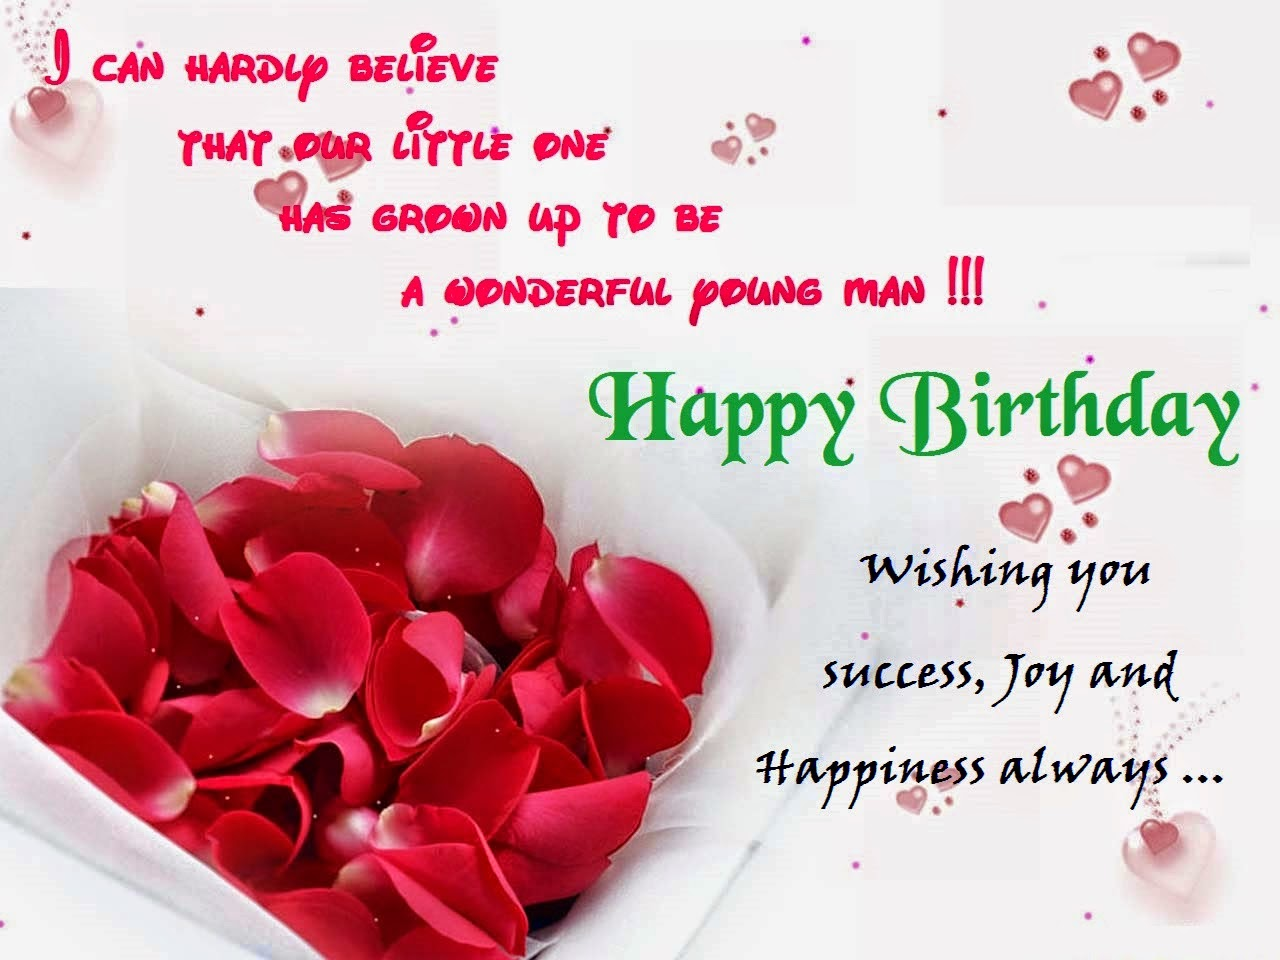 birthday message for someone you love ; Happy+Birthday+Wishes,+Saying,+Quotes+For+Someone+or+Special+Friend